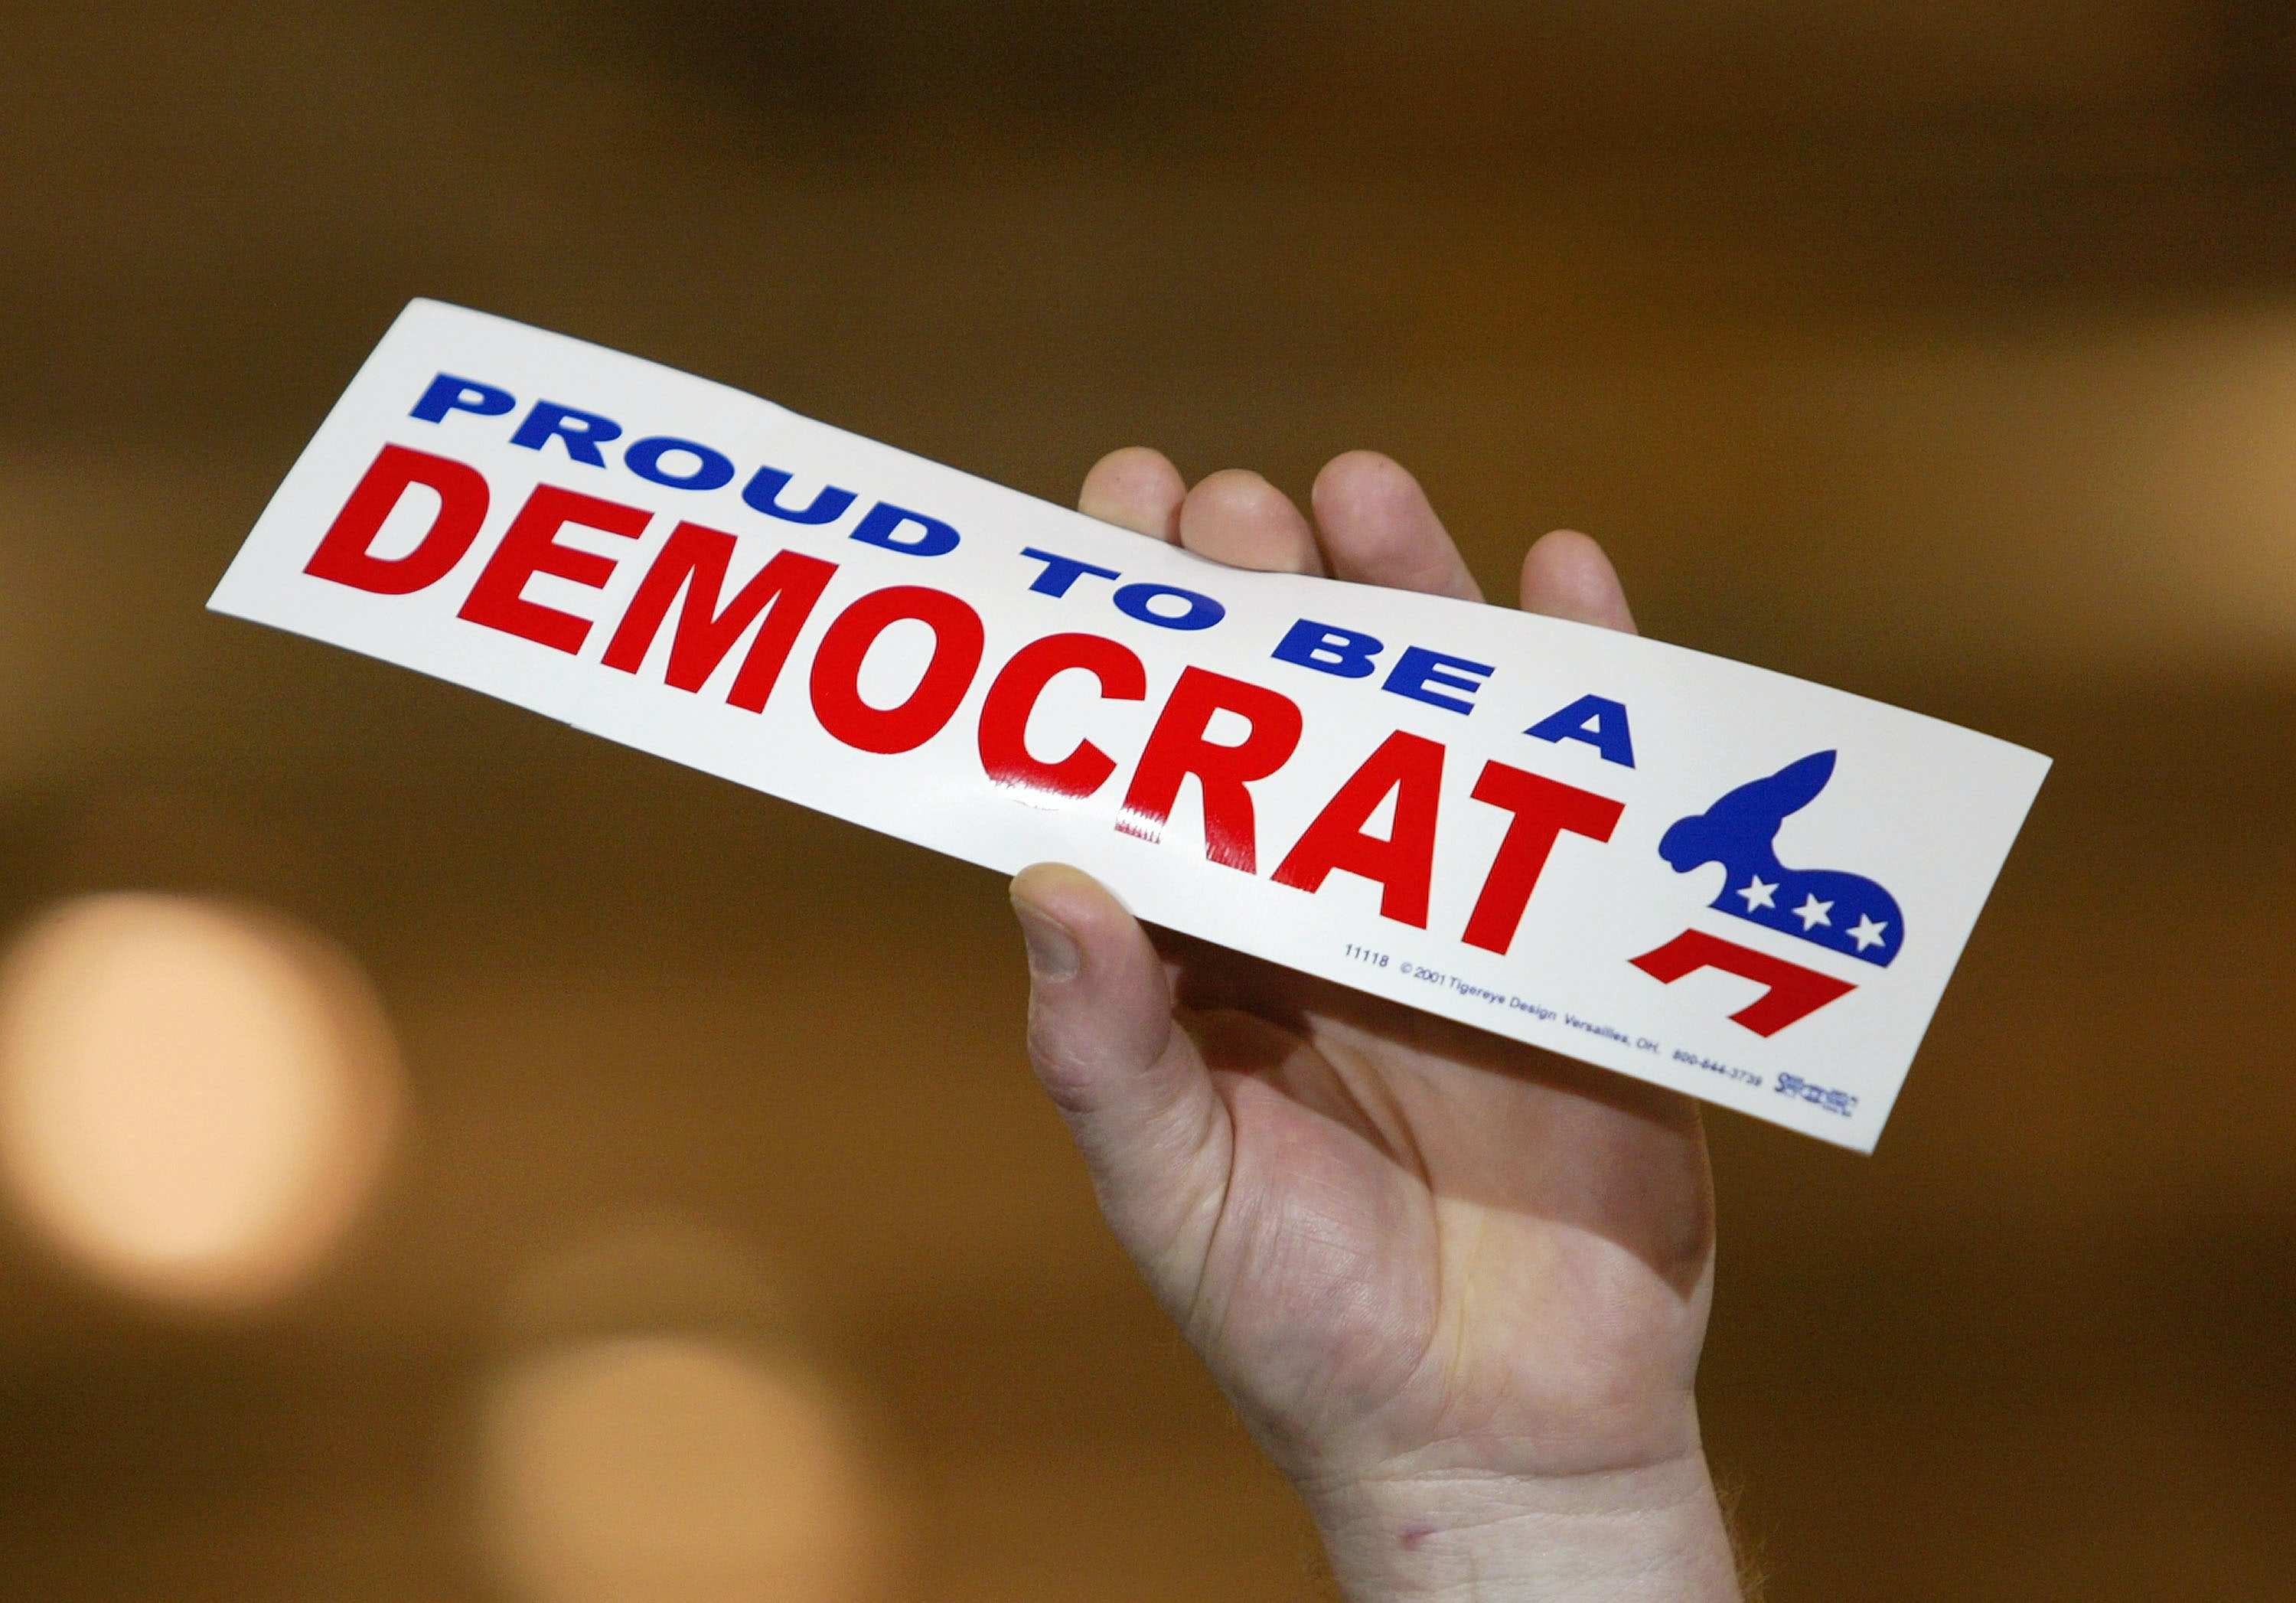 People Can't Decide If These Democrat Slogan Ideas Are Funny